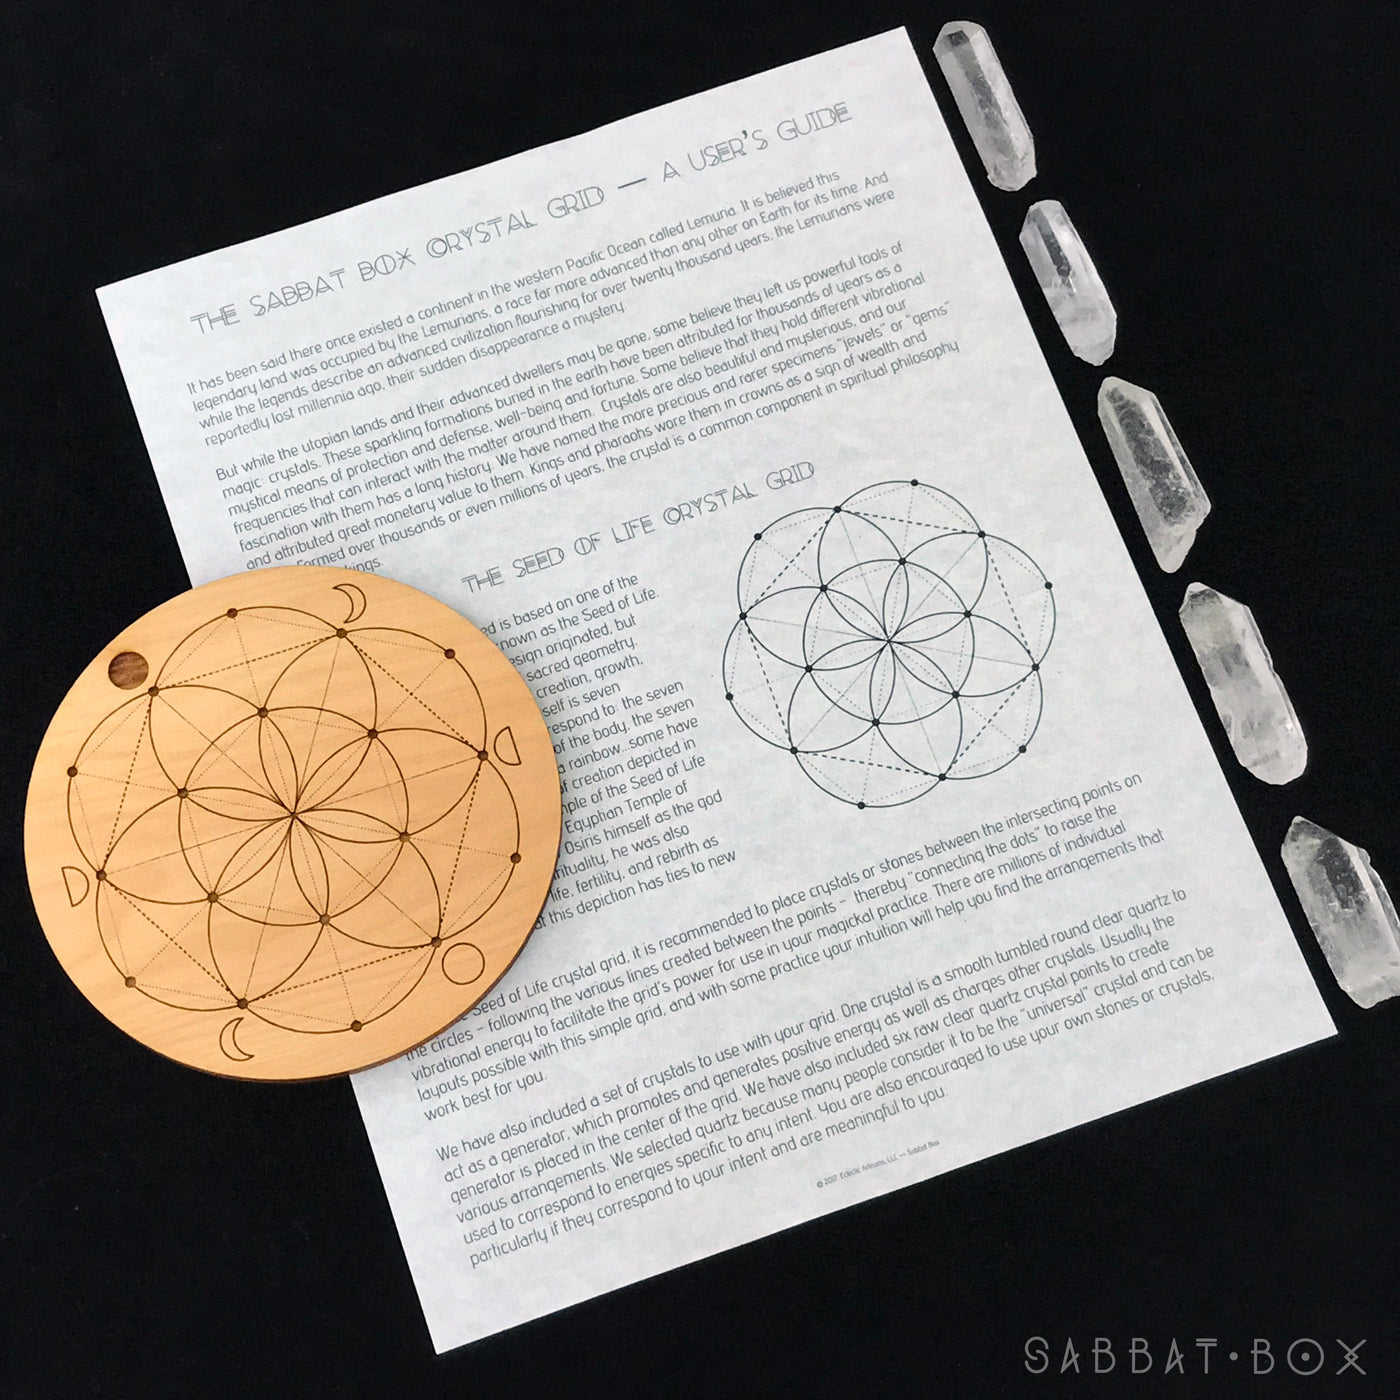 Wooden Seed Of Life Crystal Grid W Moon Phases Sabbat Box Lunar Diagram With And Instructions